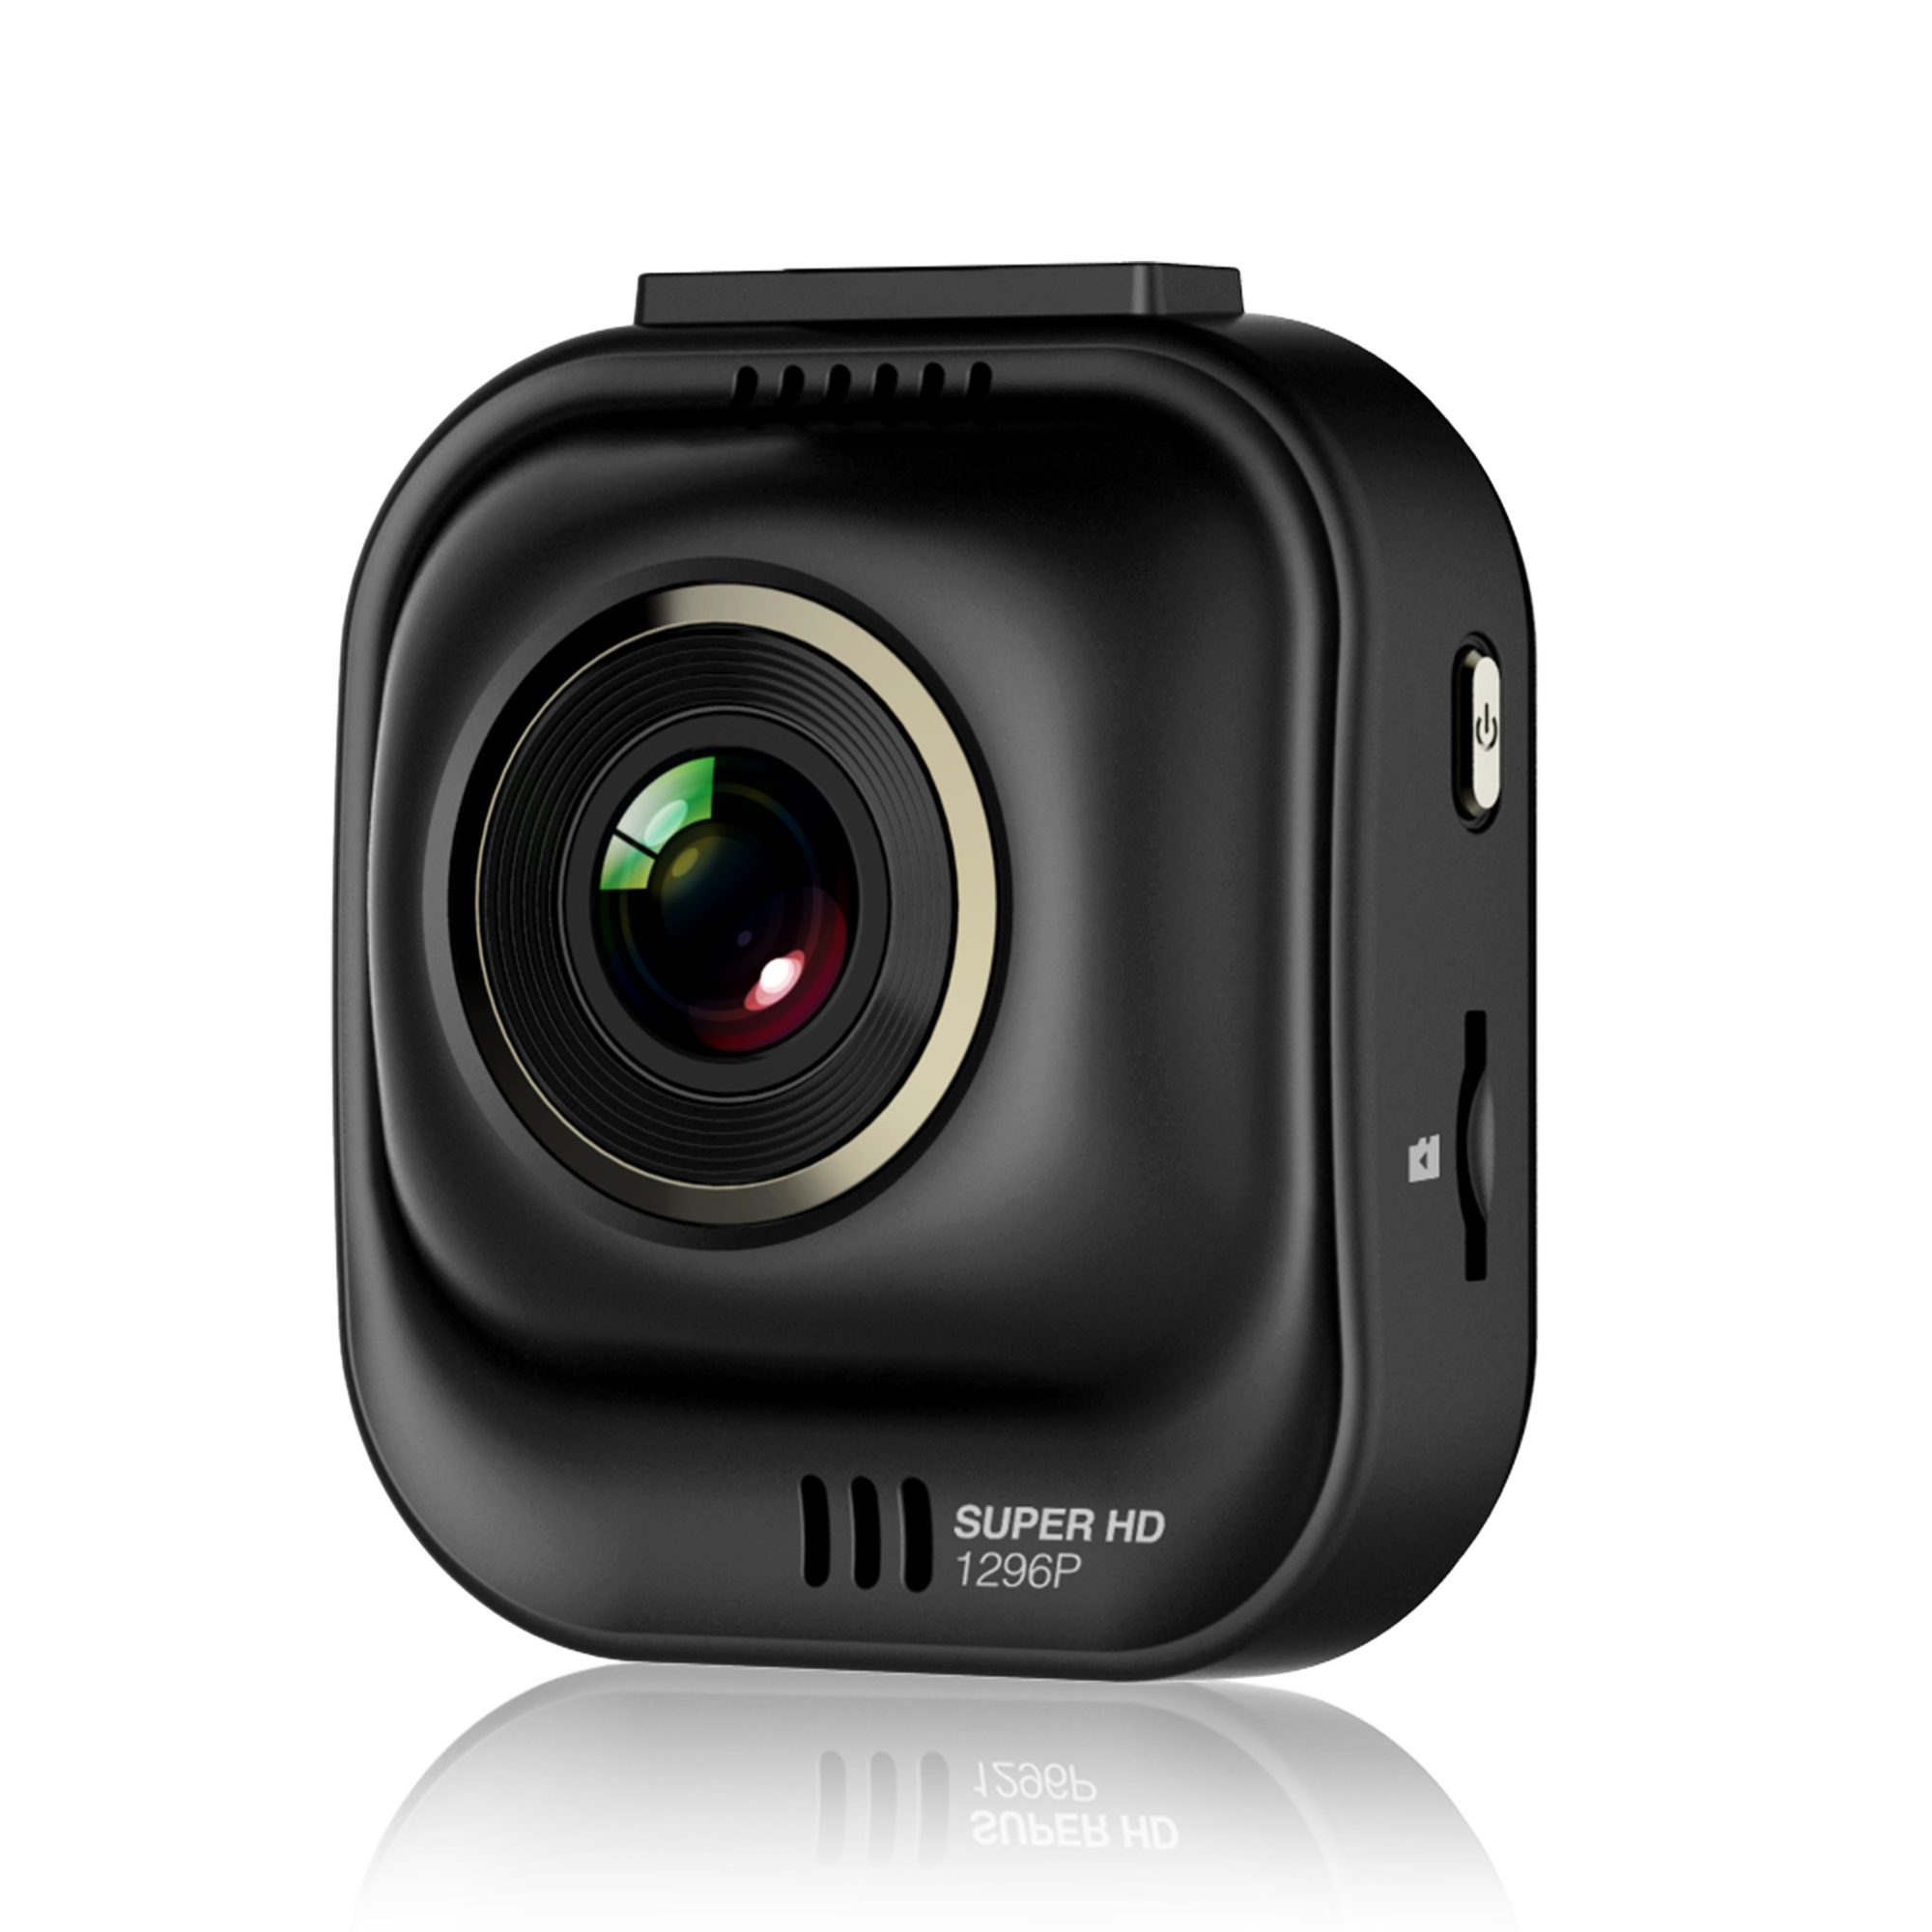 PAPAGO Car Dash Camera GoSafe 535 Super HD Dash Cam 1296P Car DVR , Car Cam, Night Vision ,Free 8GB Micro SD Card GS5358G <br />